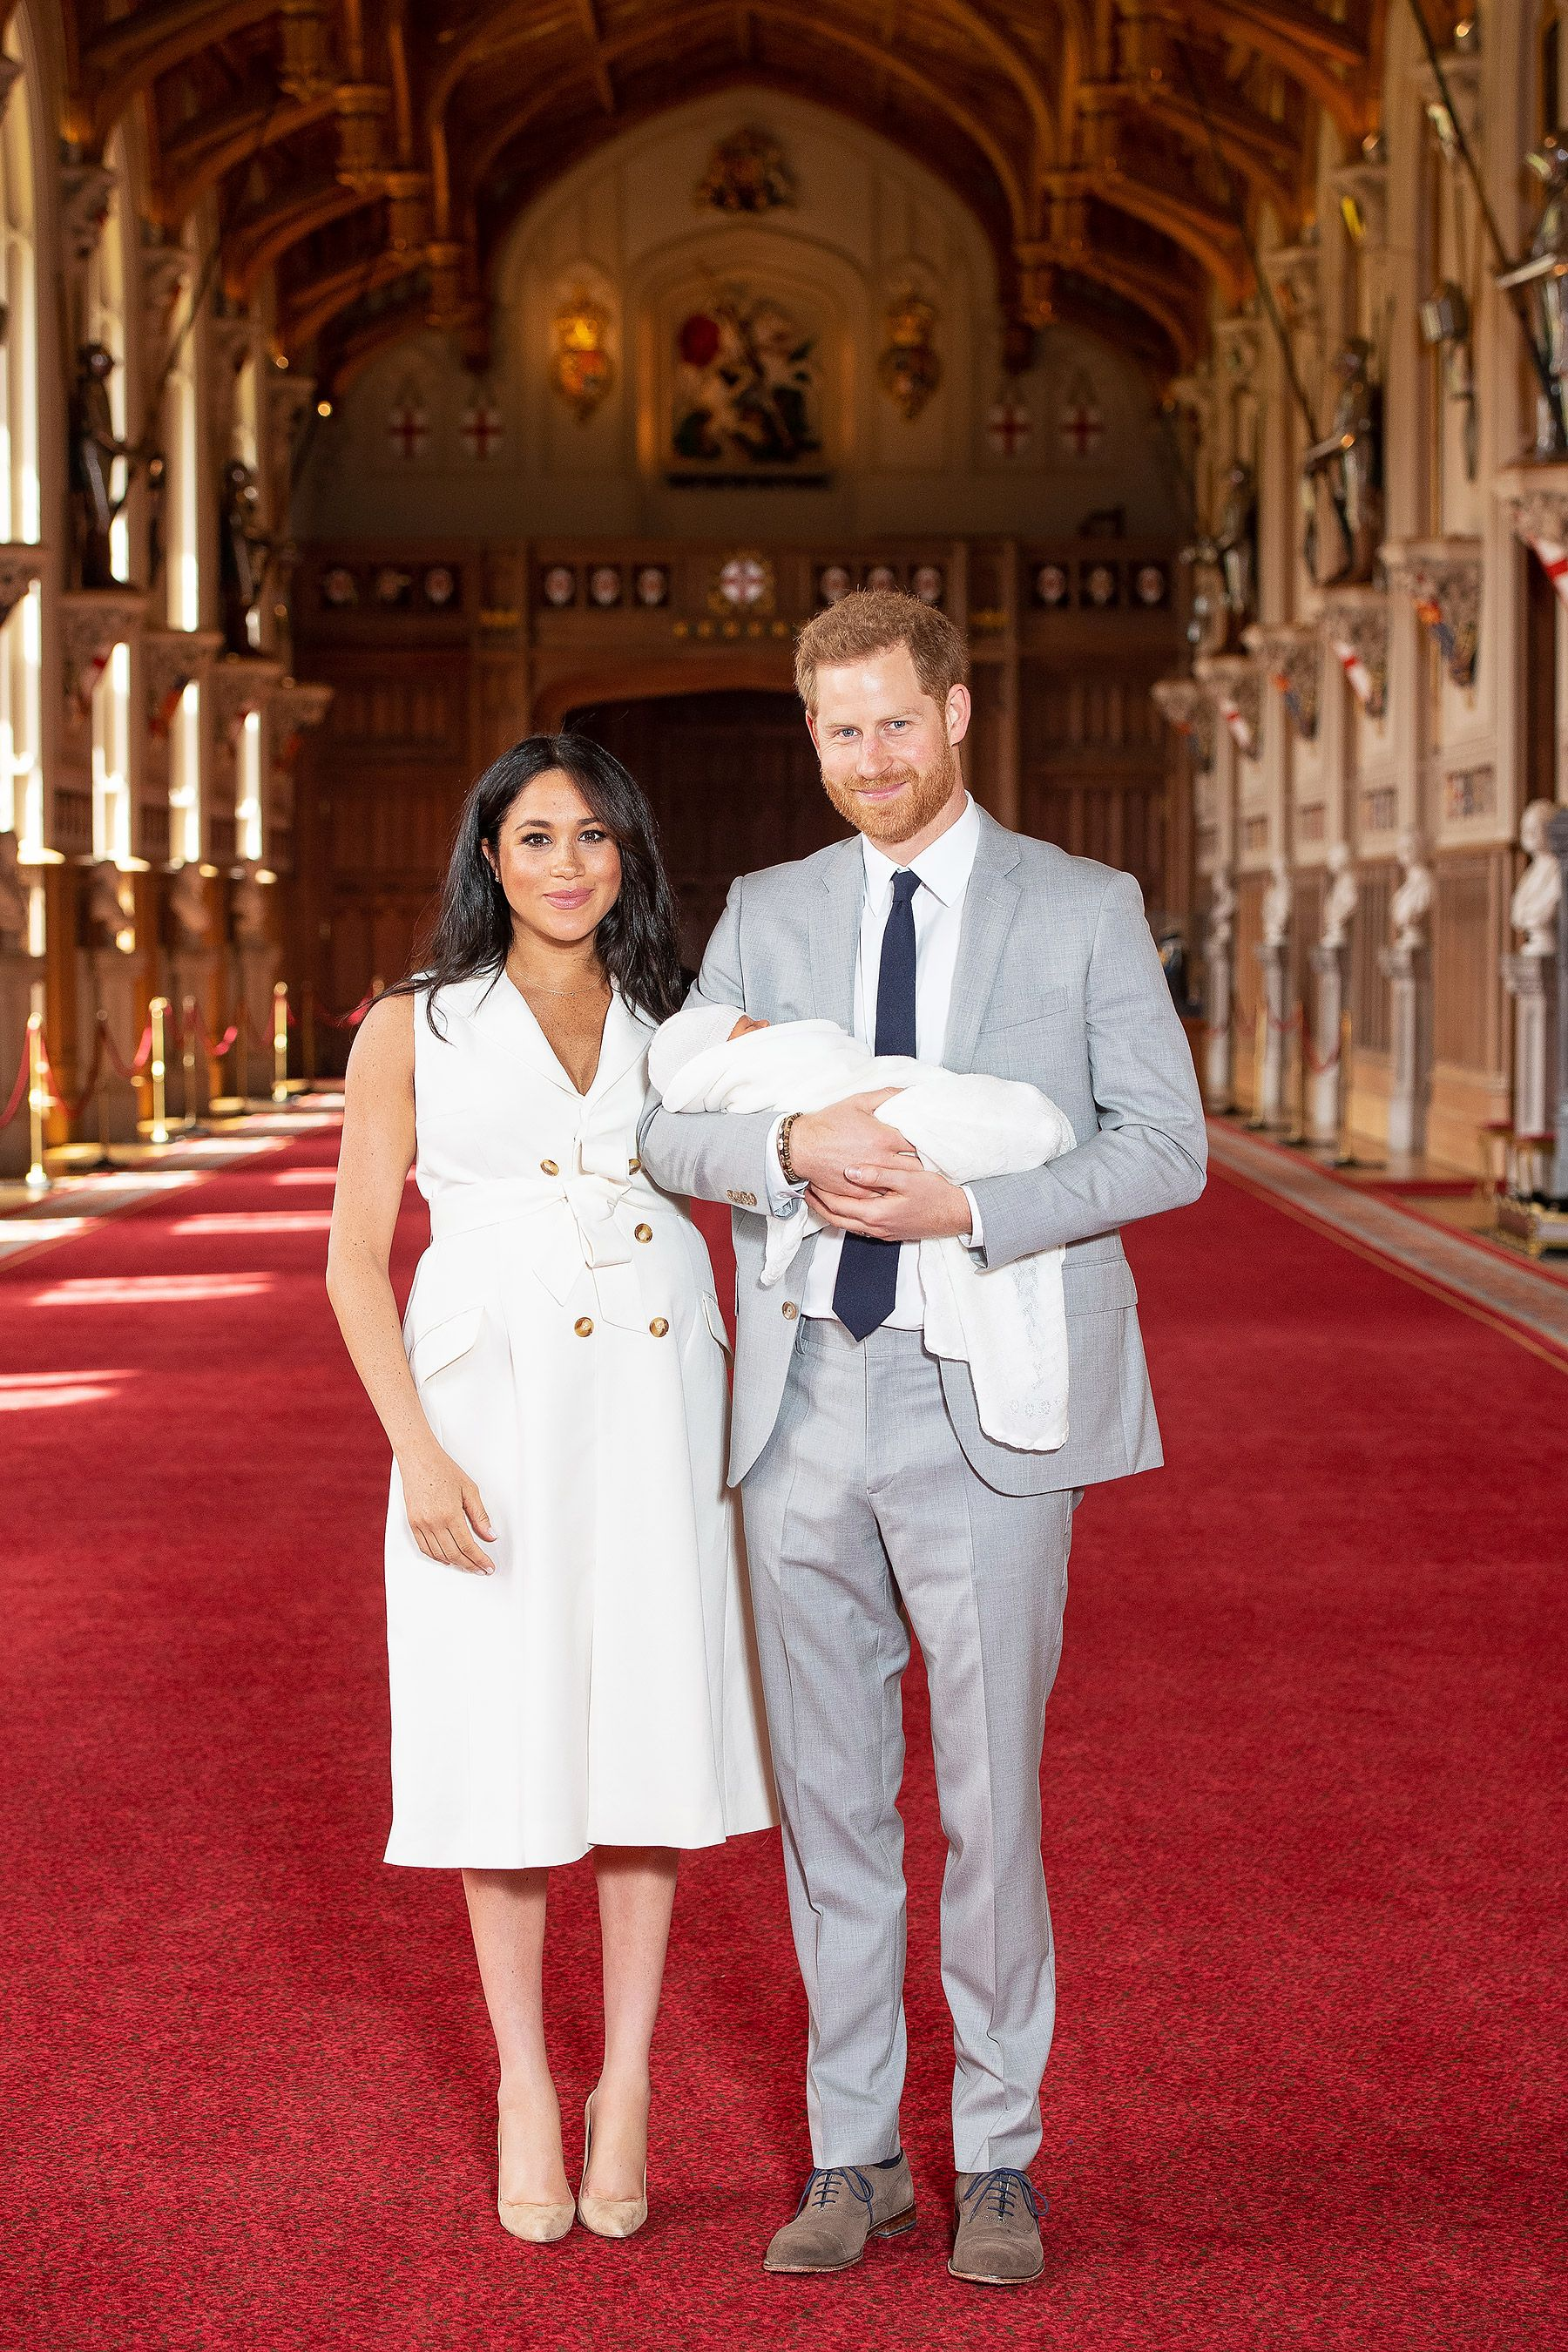 See The First Photos Of Meghan Markle And Prince Harry With Their Royal Baby Meghan Markle Prince Harry Prince Harry Meghan Markle